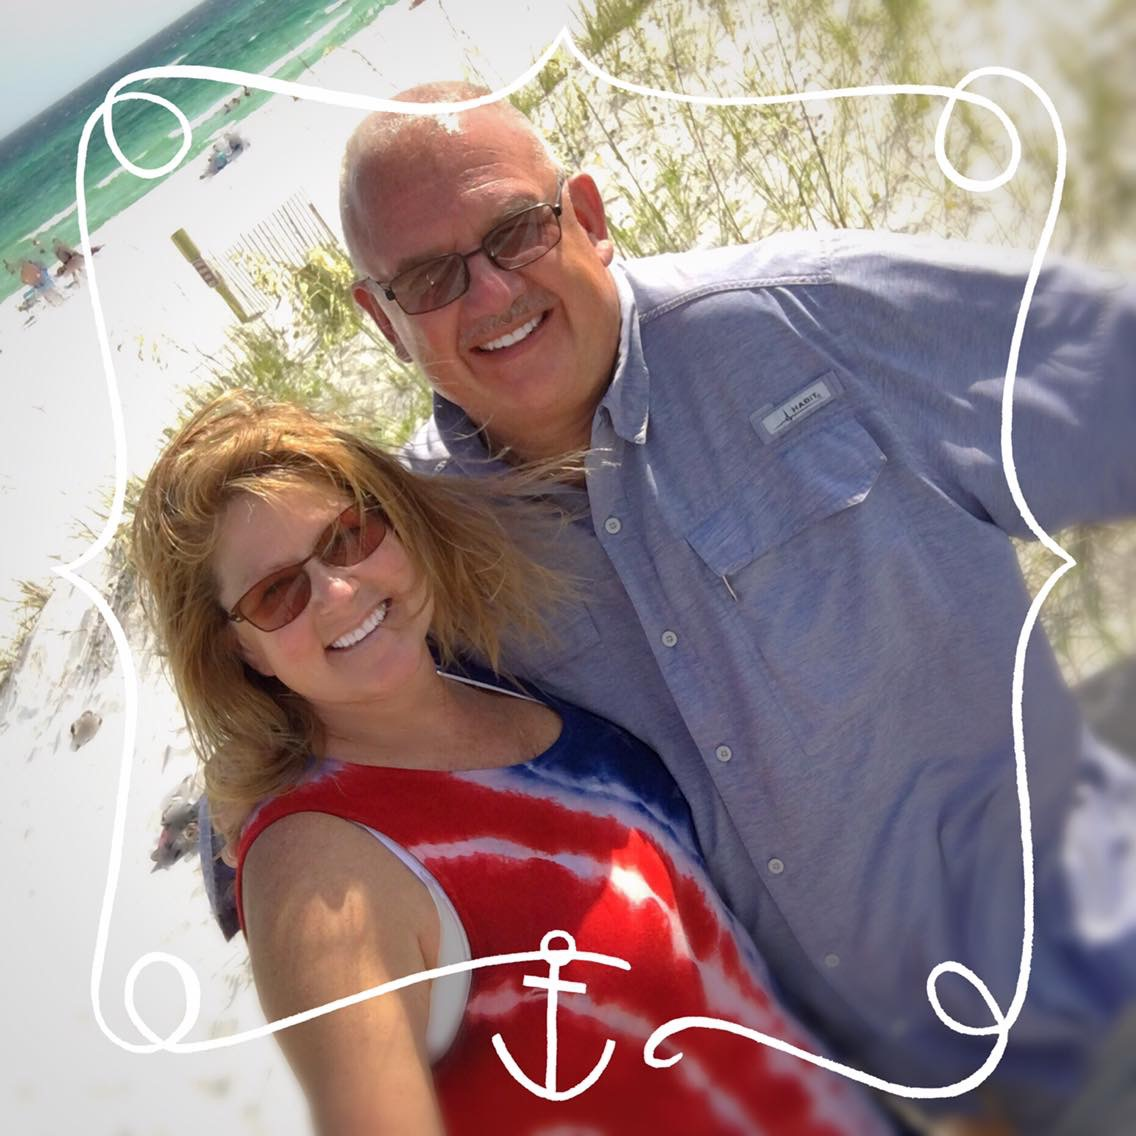 Married 35 years!